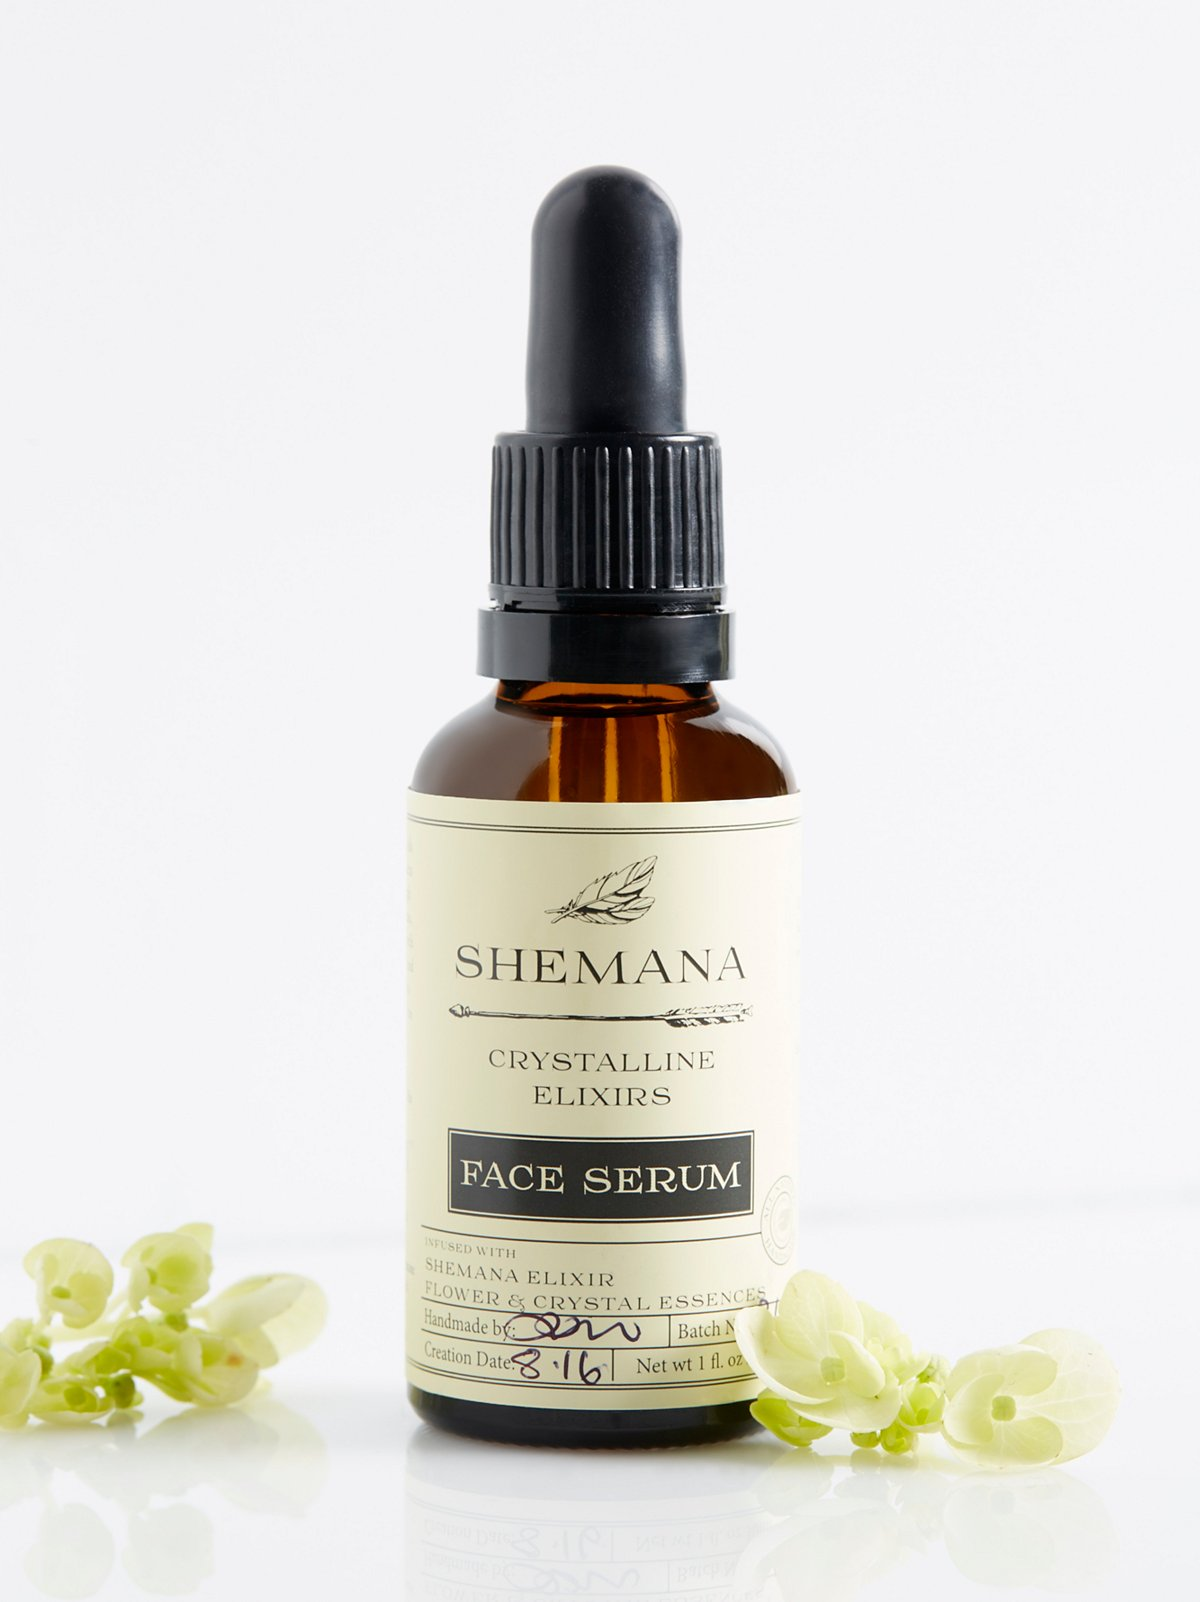 Shemana Face Serum